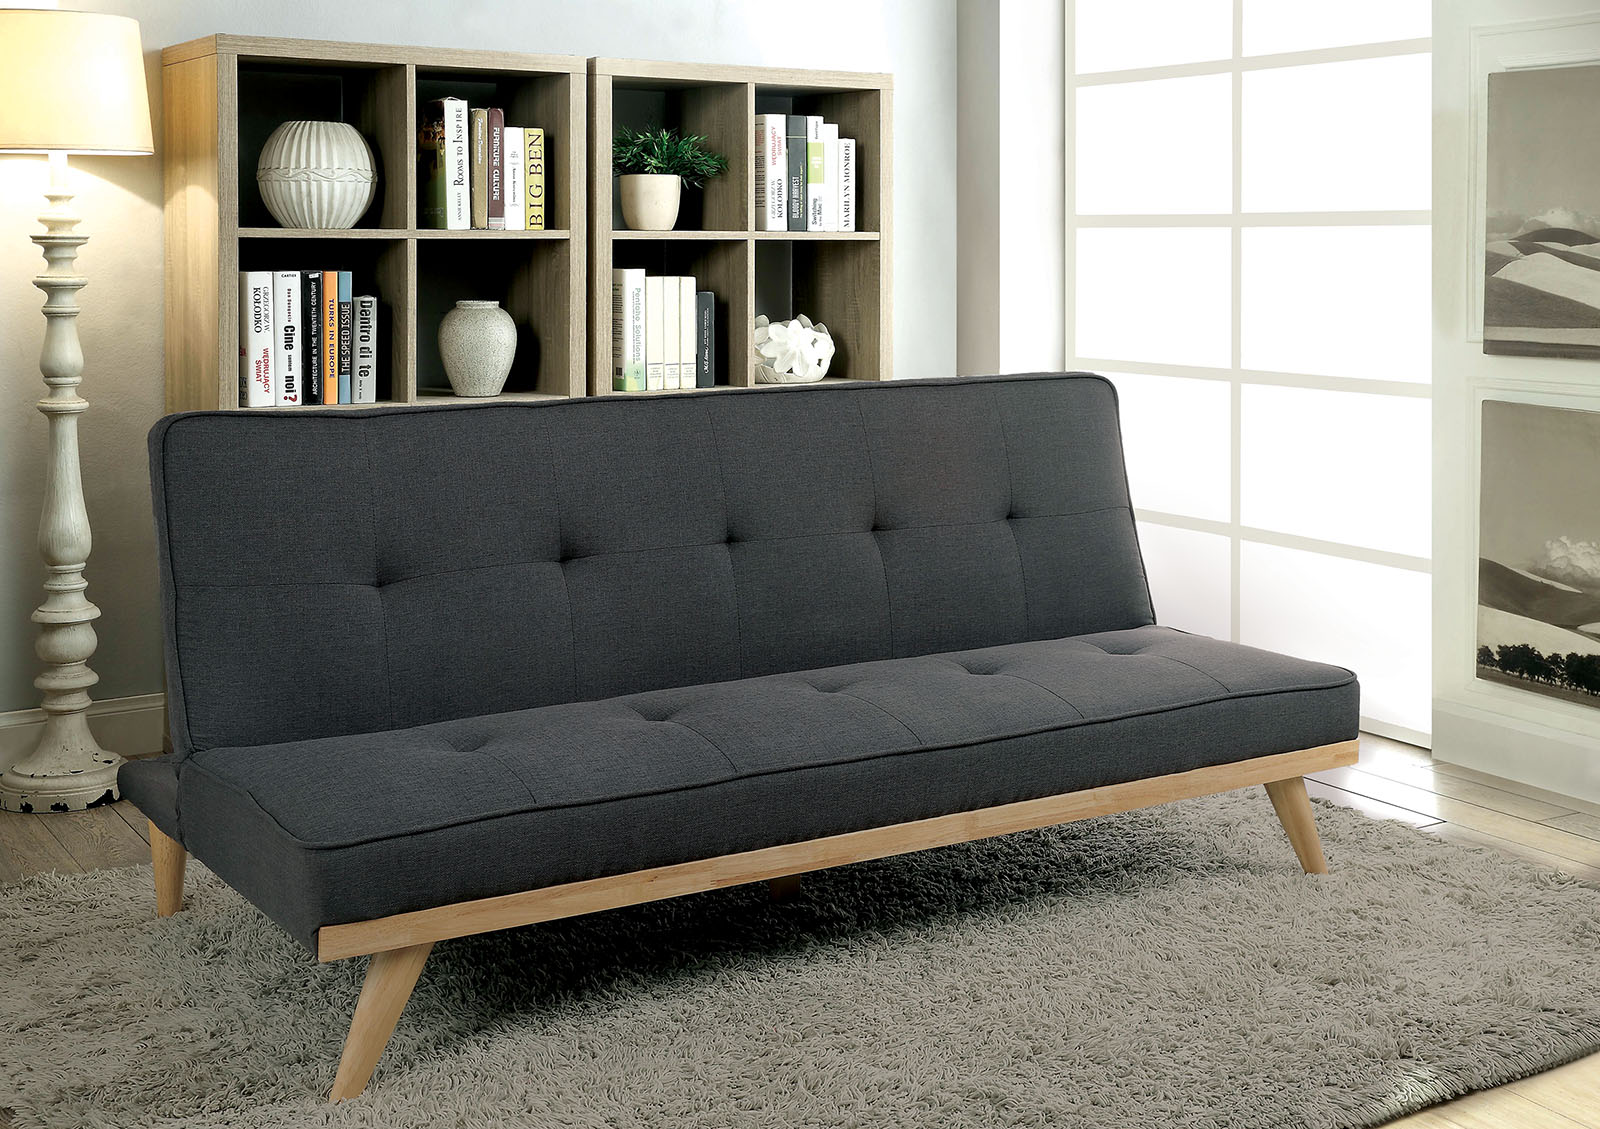 Furniture Of America 2441gy Gray Mid Century Modern Futon